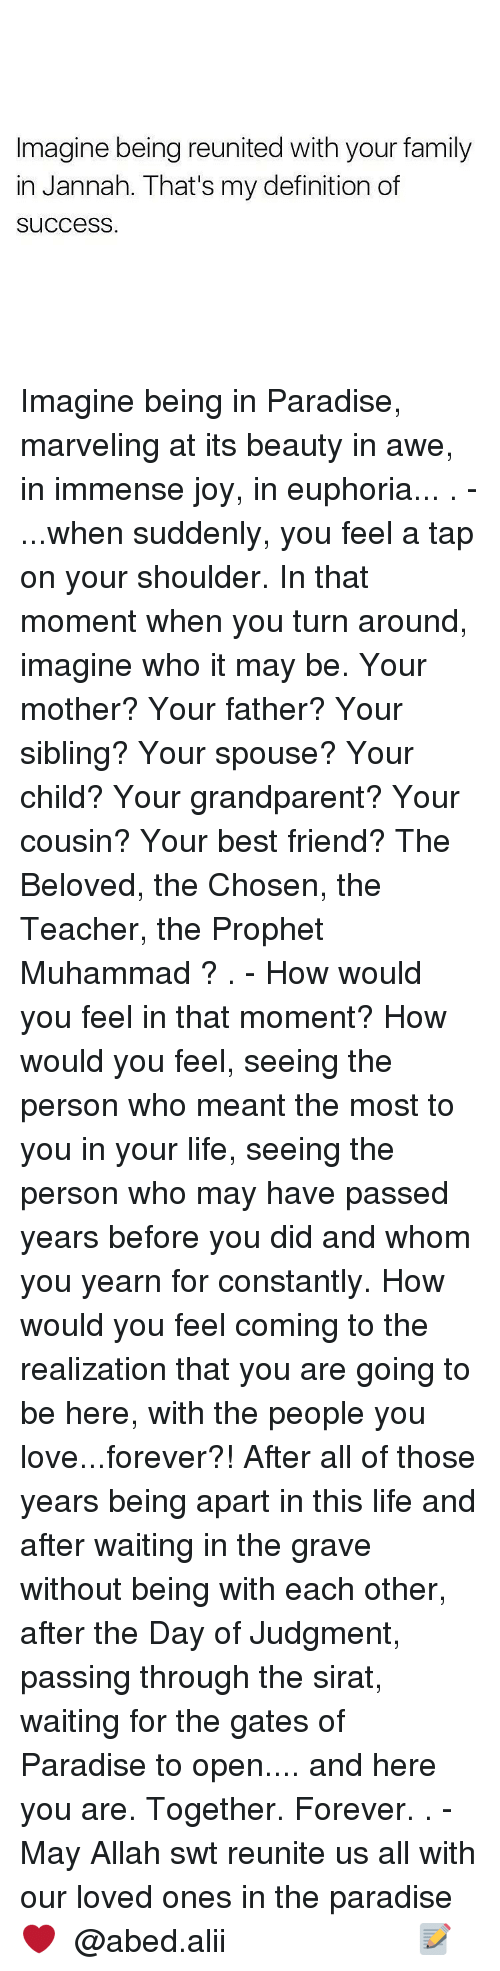 Memes, Muhammad, And The Prophet: Imagine Being Reunited With Your Family  In Jannah